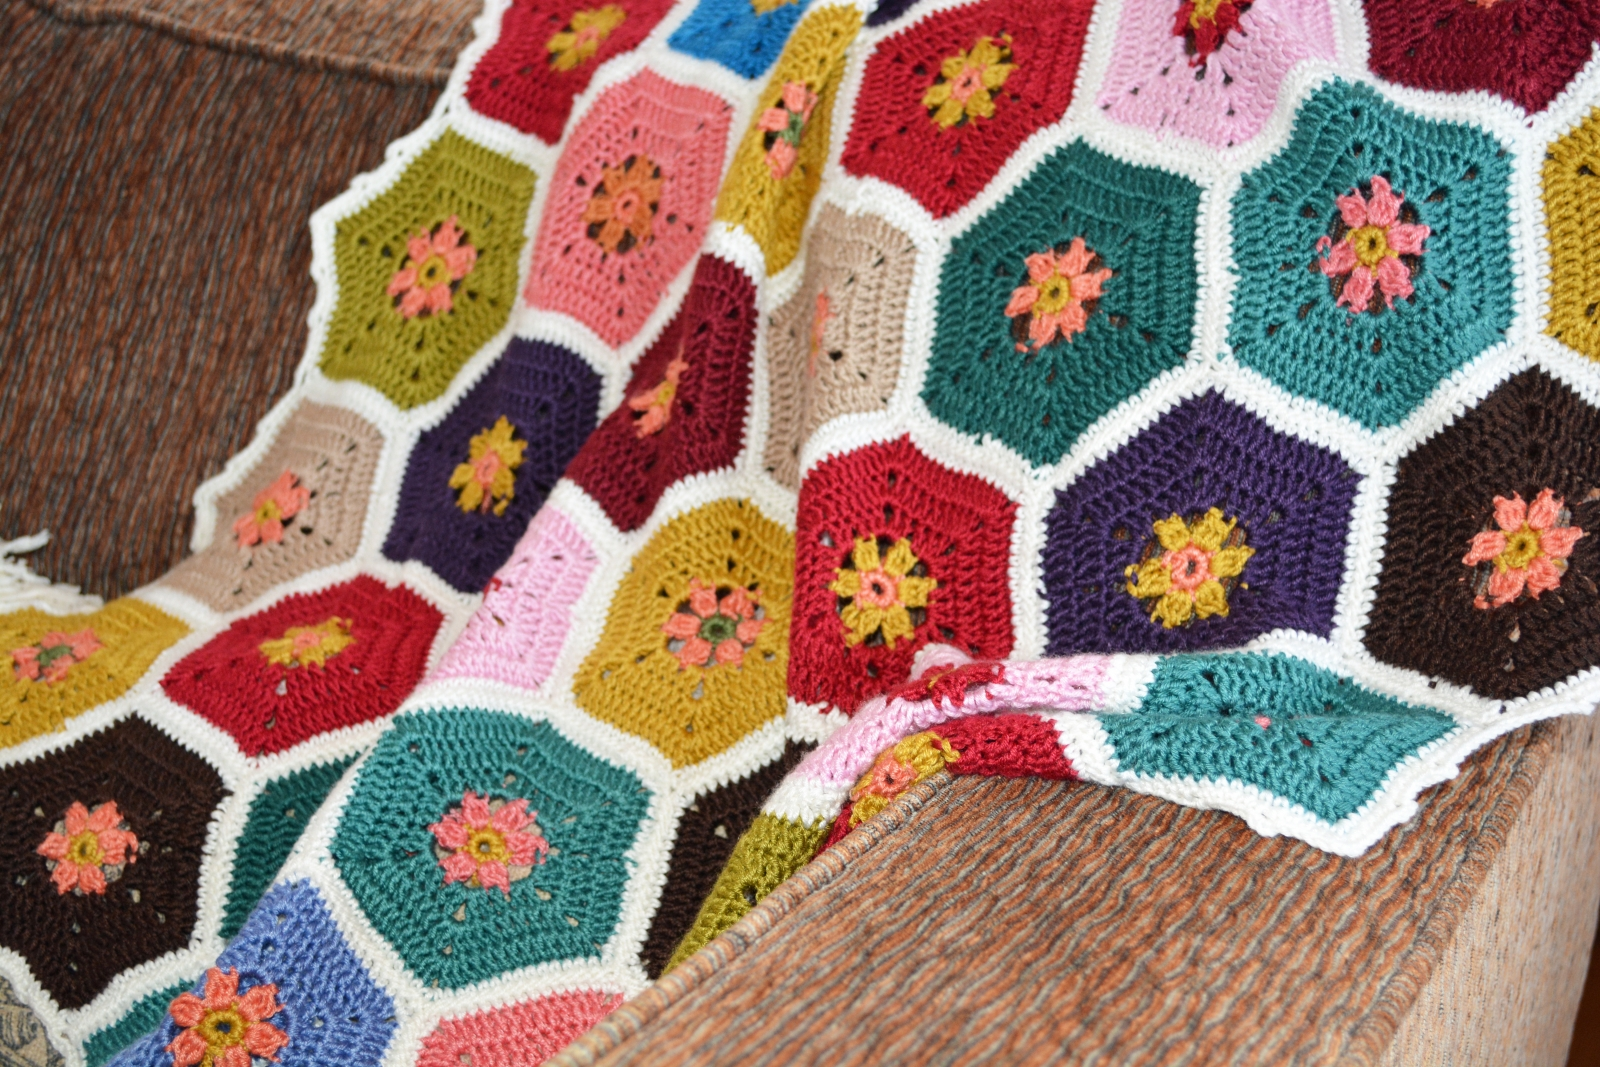 Crocheted Honeycomb Afghan